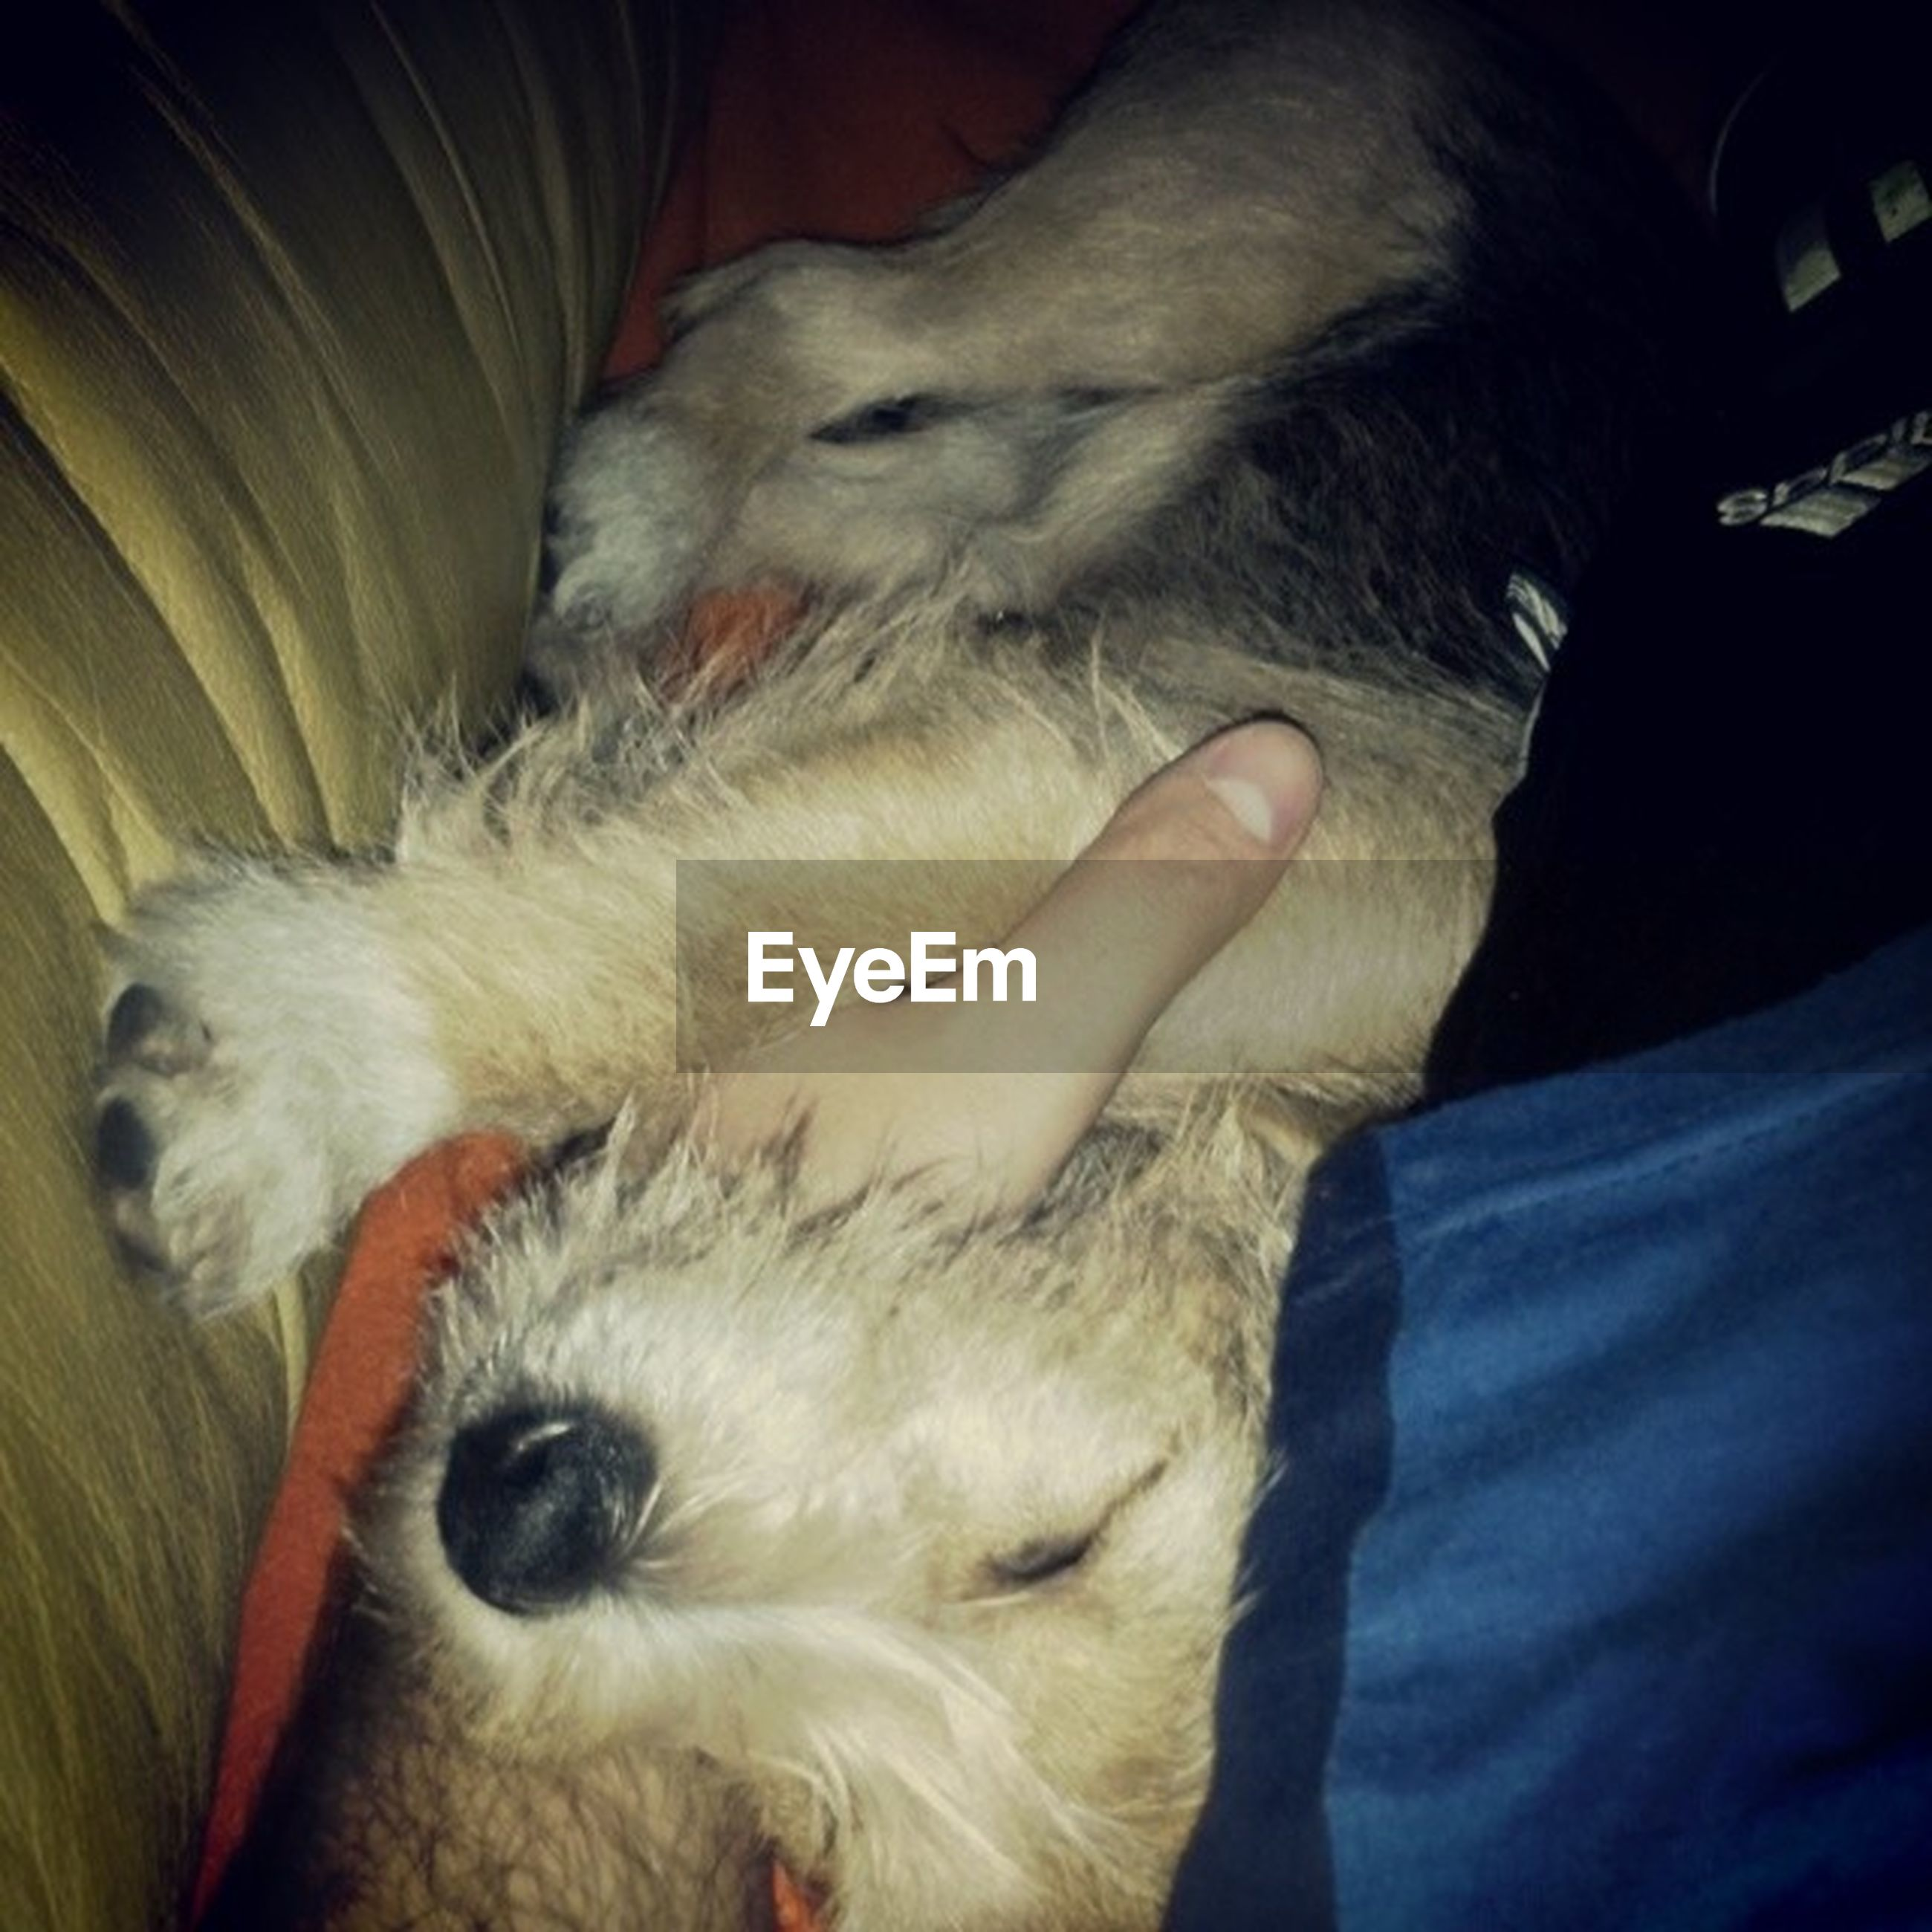 domestic animals, pets, one animal, mammal, animal themes, dog, indoors, relaxation, sleeping, resting, lying down, bed, home interior, eyes closed, close-up, one person, animal head, part of, sofa, pampered pets